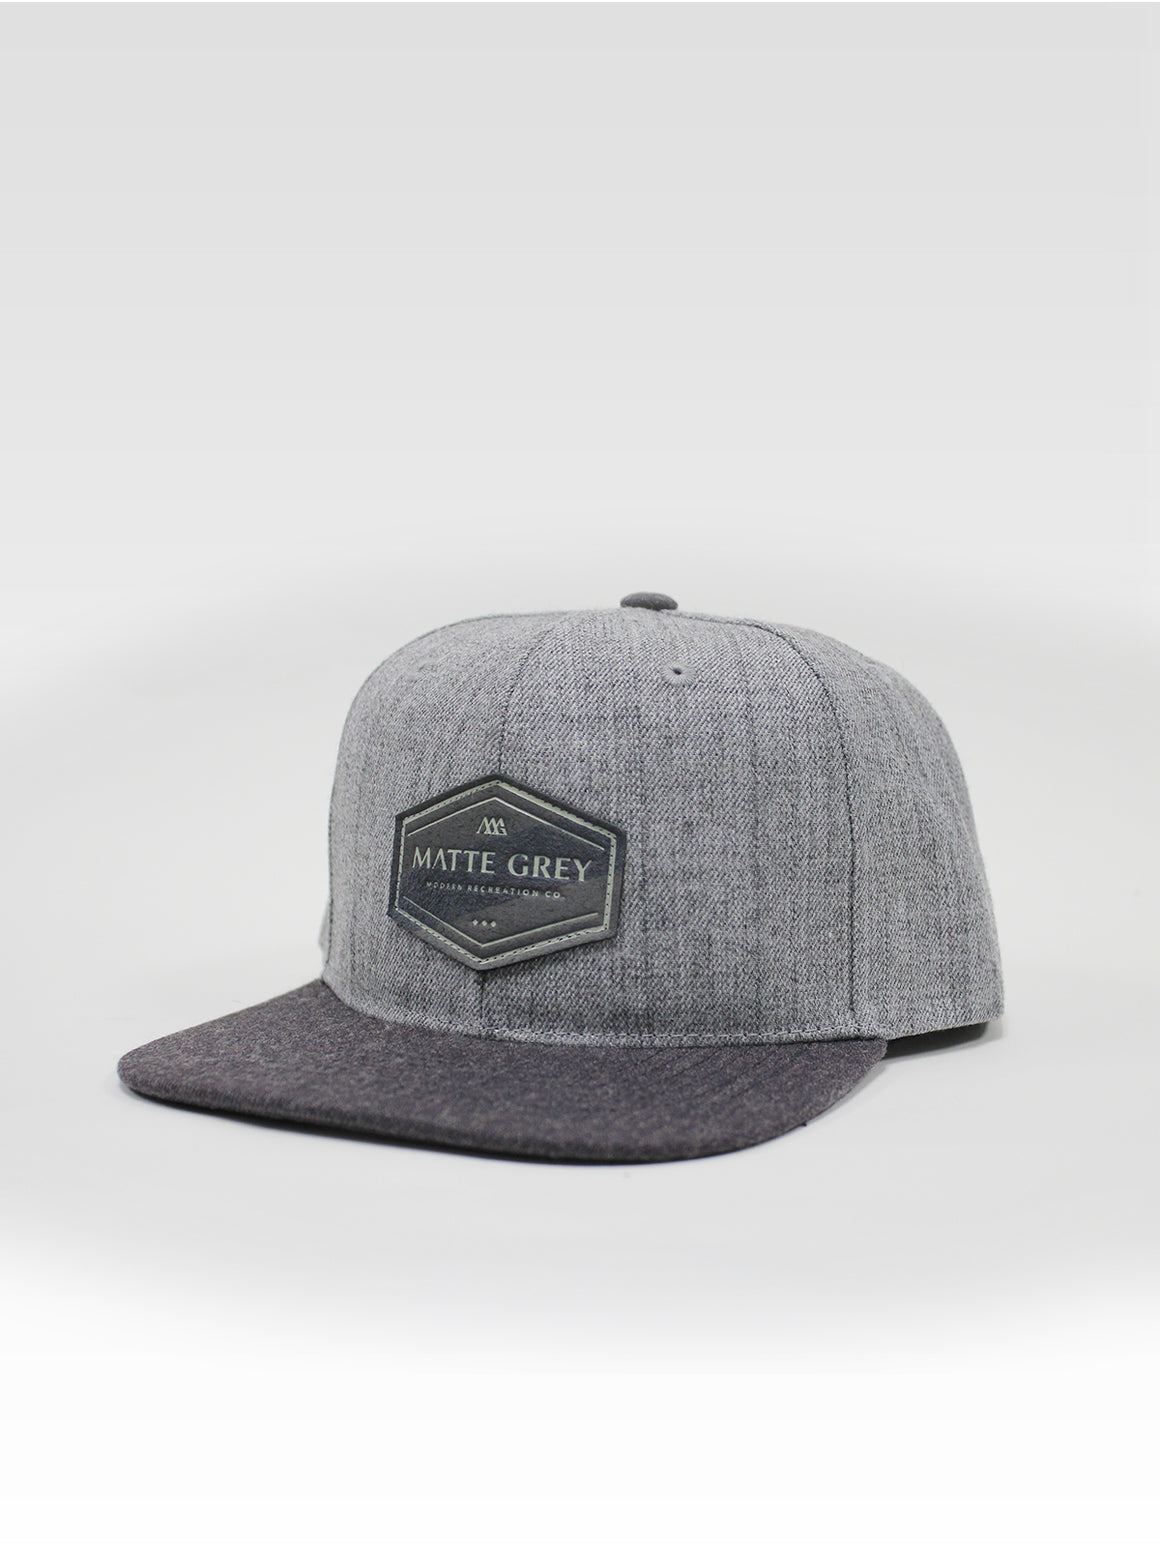 Hex Angle Snapback - Lt Grey Heather (Charcoal Heather)